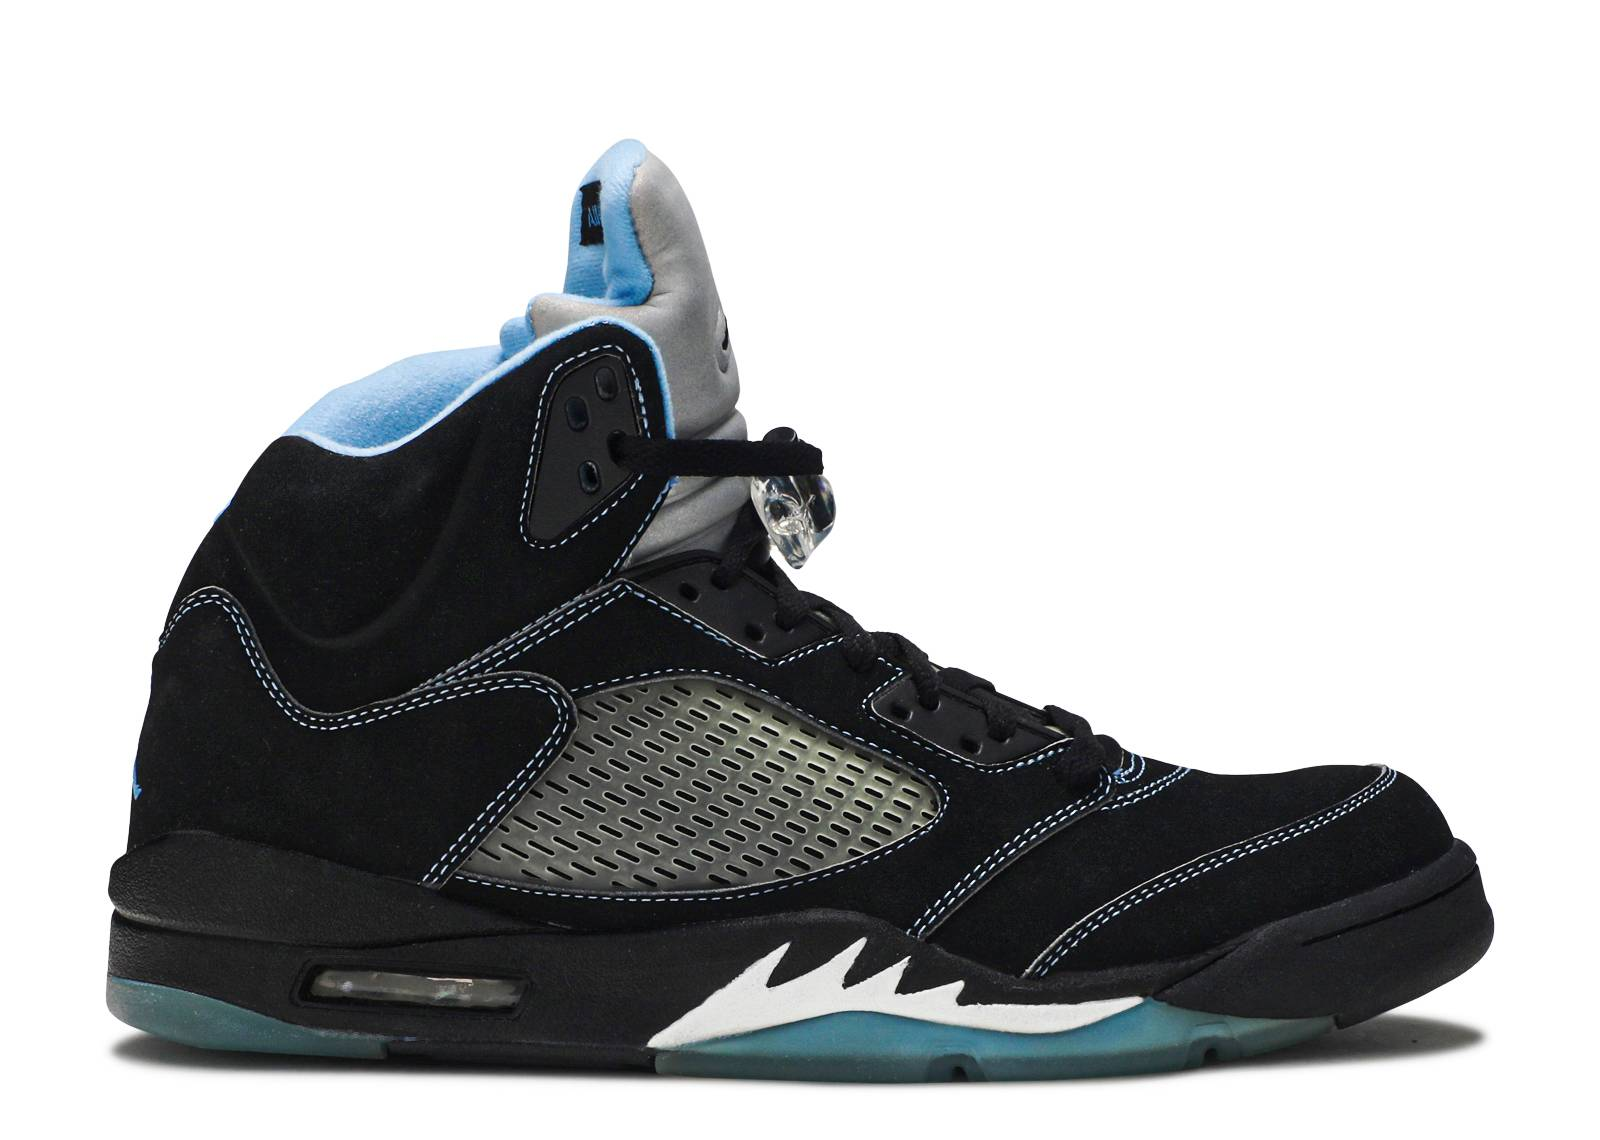 buy popular 20e11 ee0d1 Air Jordan 5 Retro Ls - Air Jordan - 314259 041 - black/university ...